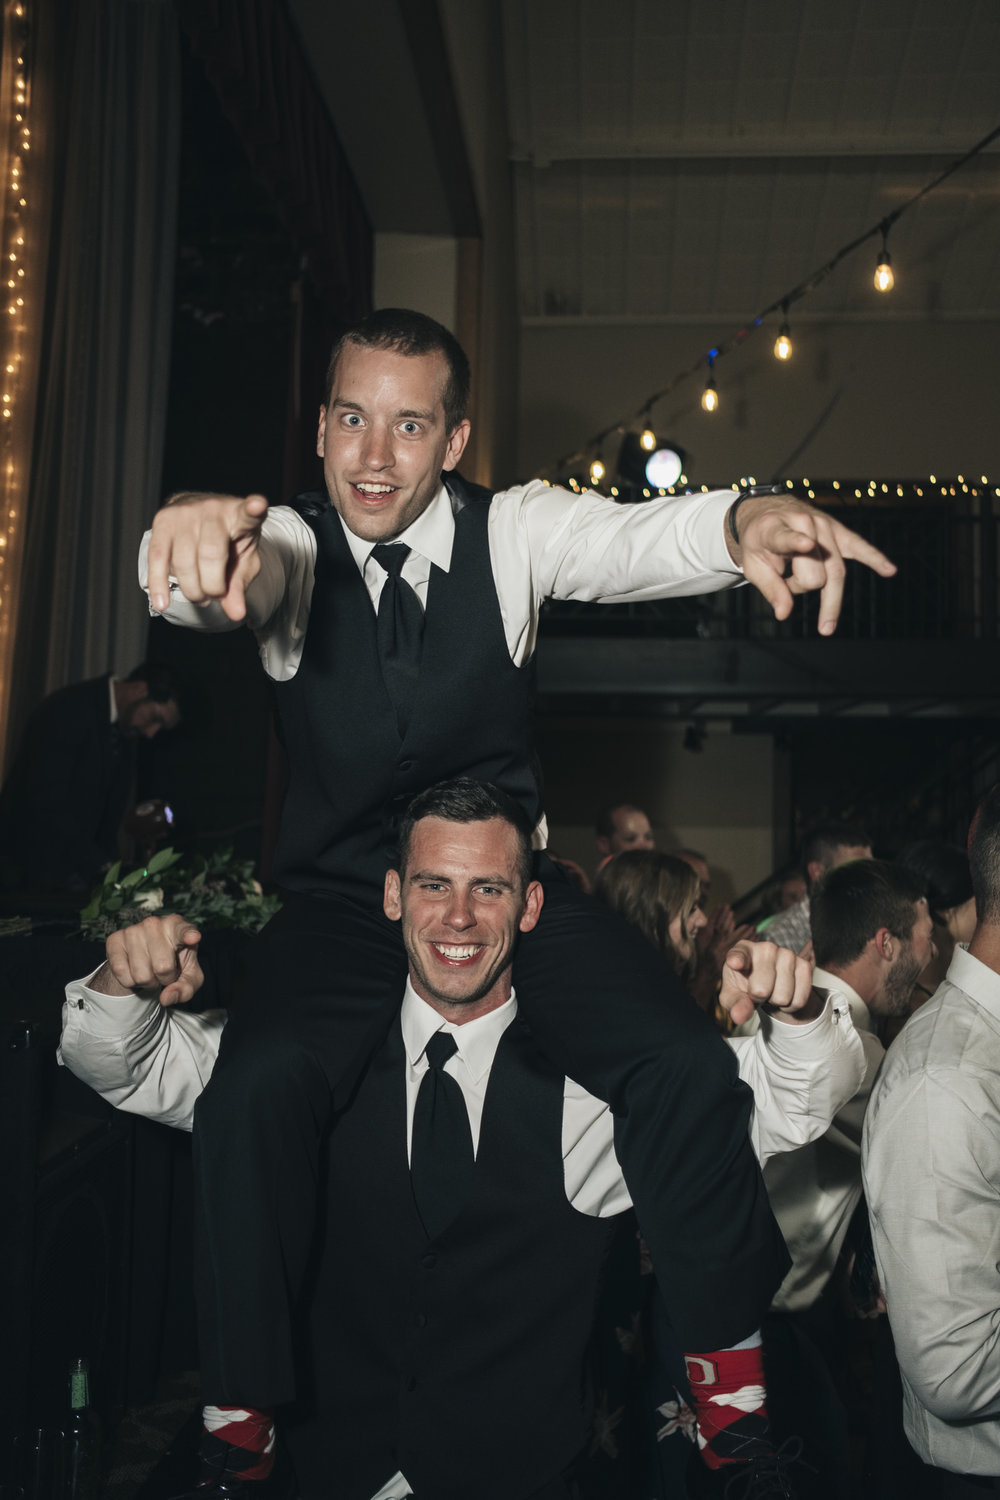 Groomsmen have fun at Toledo, Ohio wedding reception at Nazareth Hall